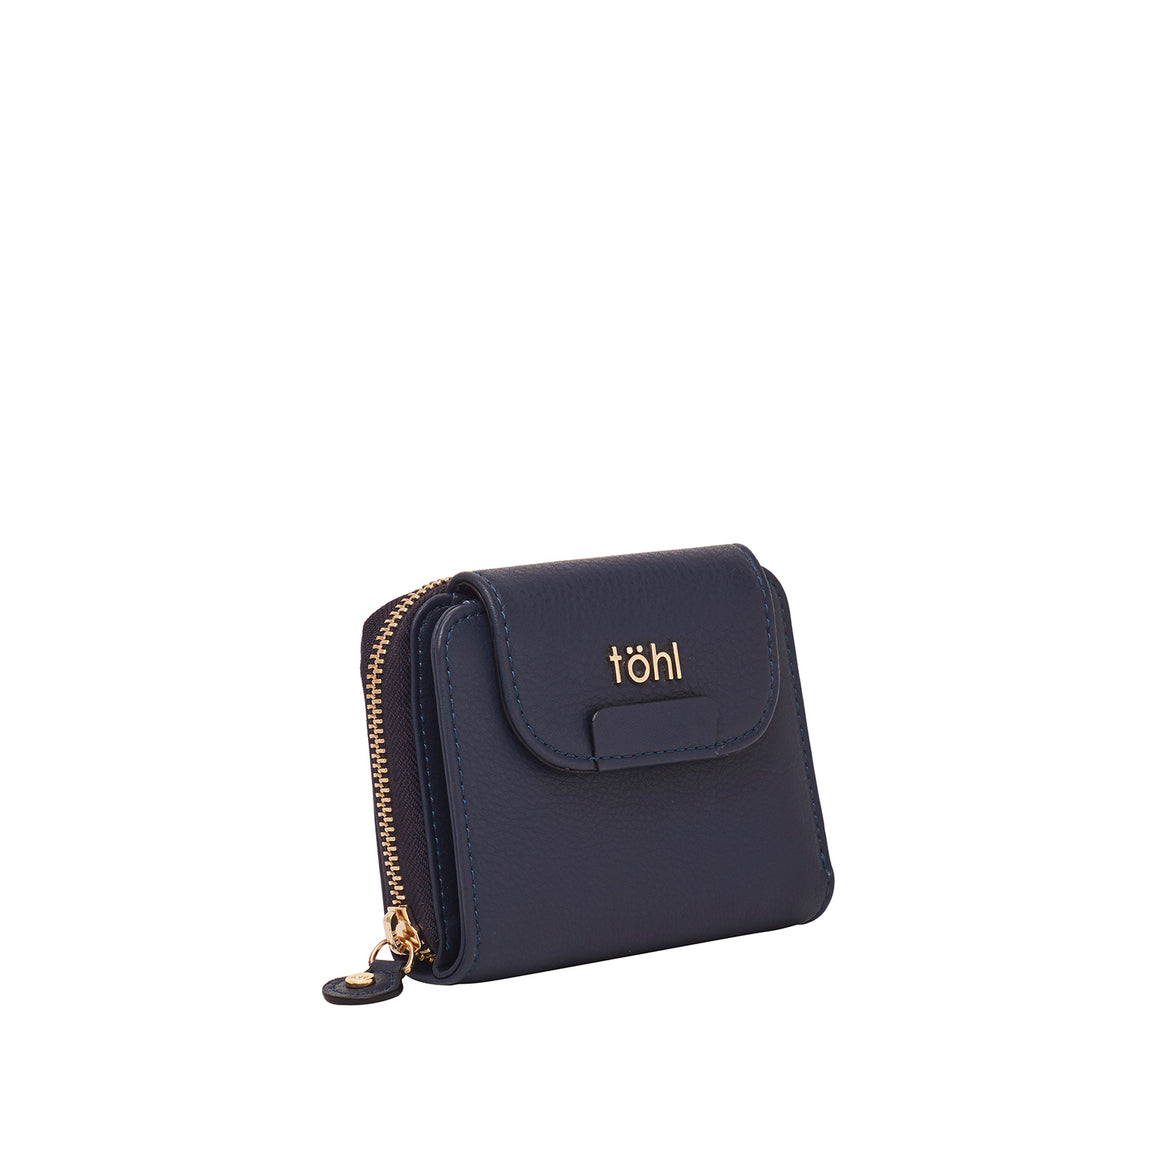 WT 0020 - TOHL FINSBURY MINI WOMEN'S WALLET - INDIGO BLUE